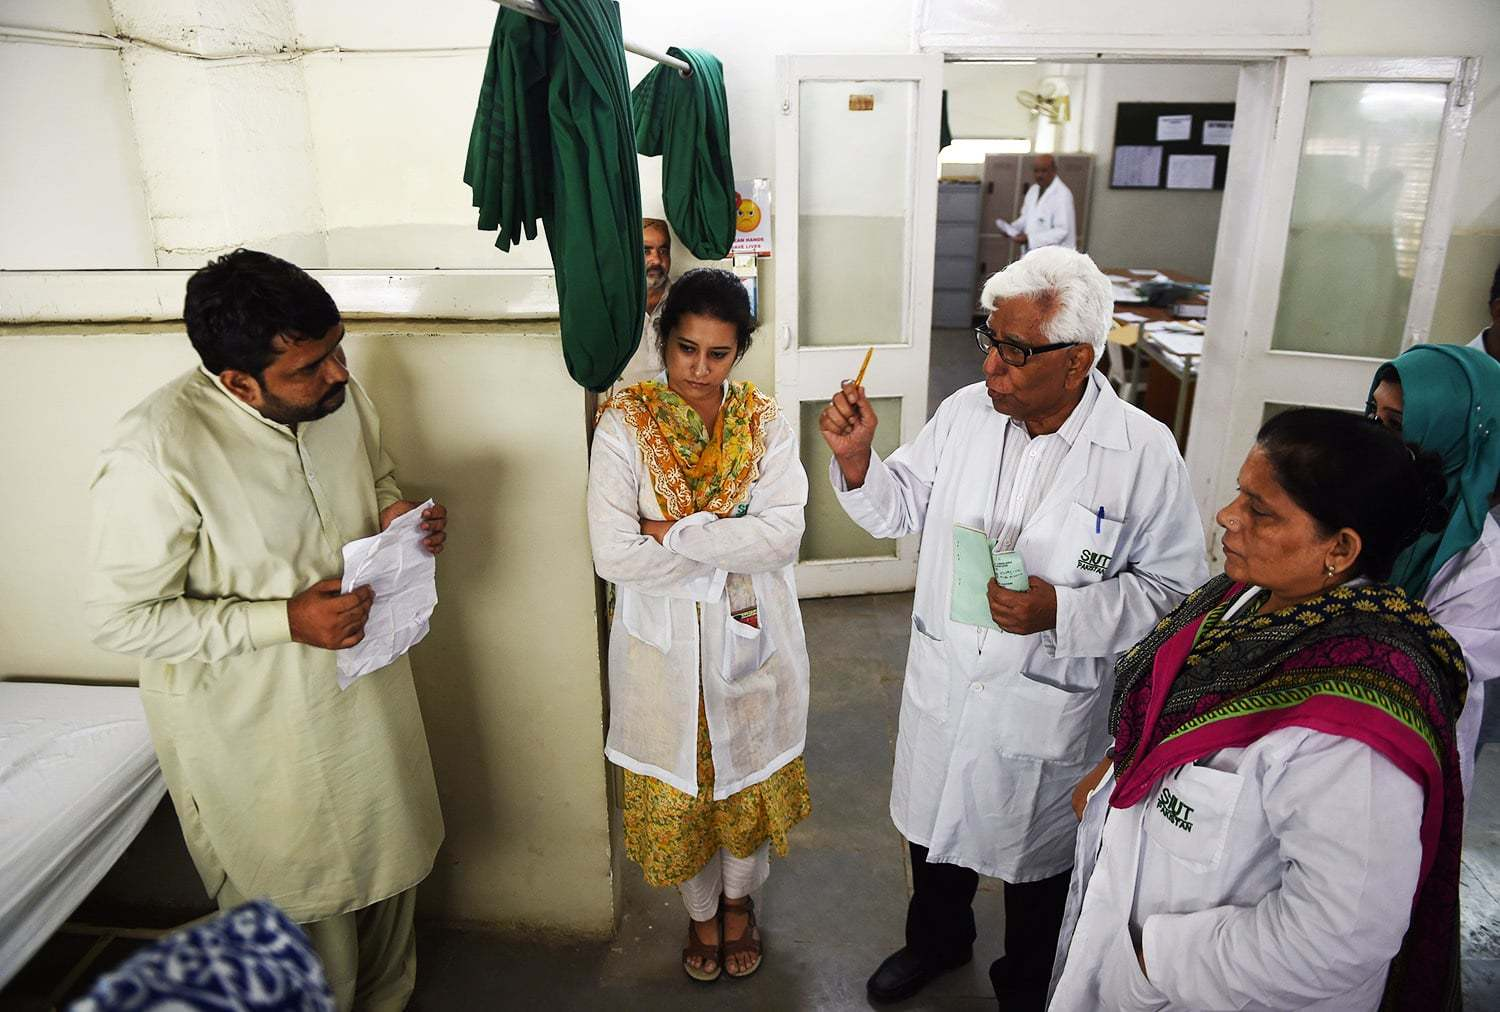 Dr Rizvi, who heads the Sindh Institute of Urology and Transplantation (SIUT) which has treated millions free of cost, is seen here speaking to doctors and patients at his facility. Photo credit: AFP